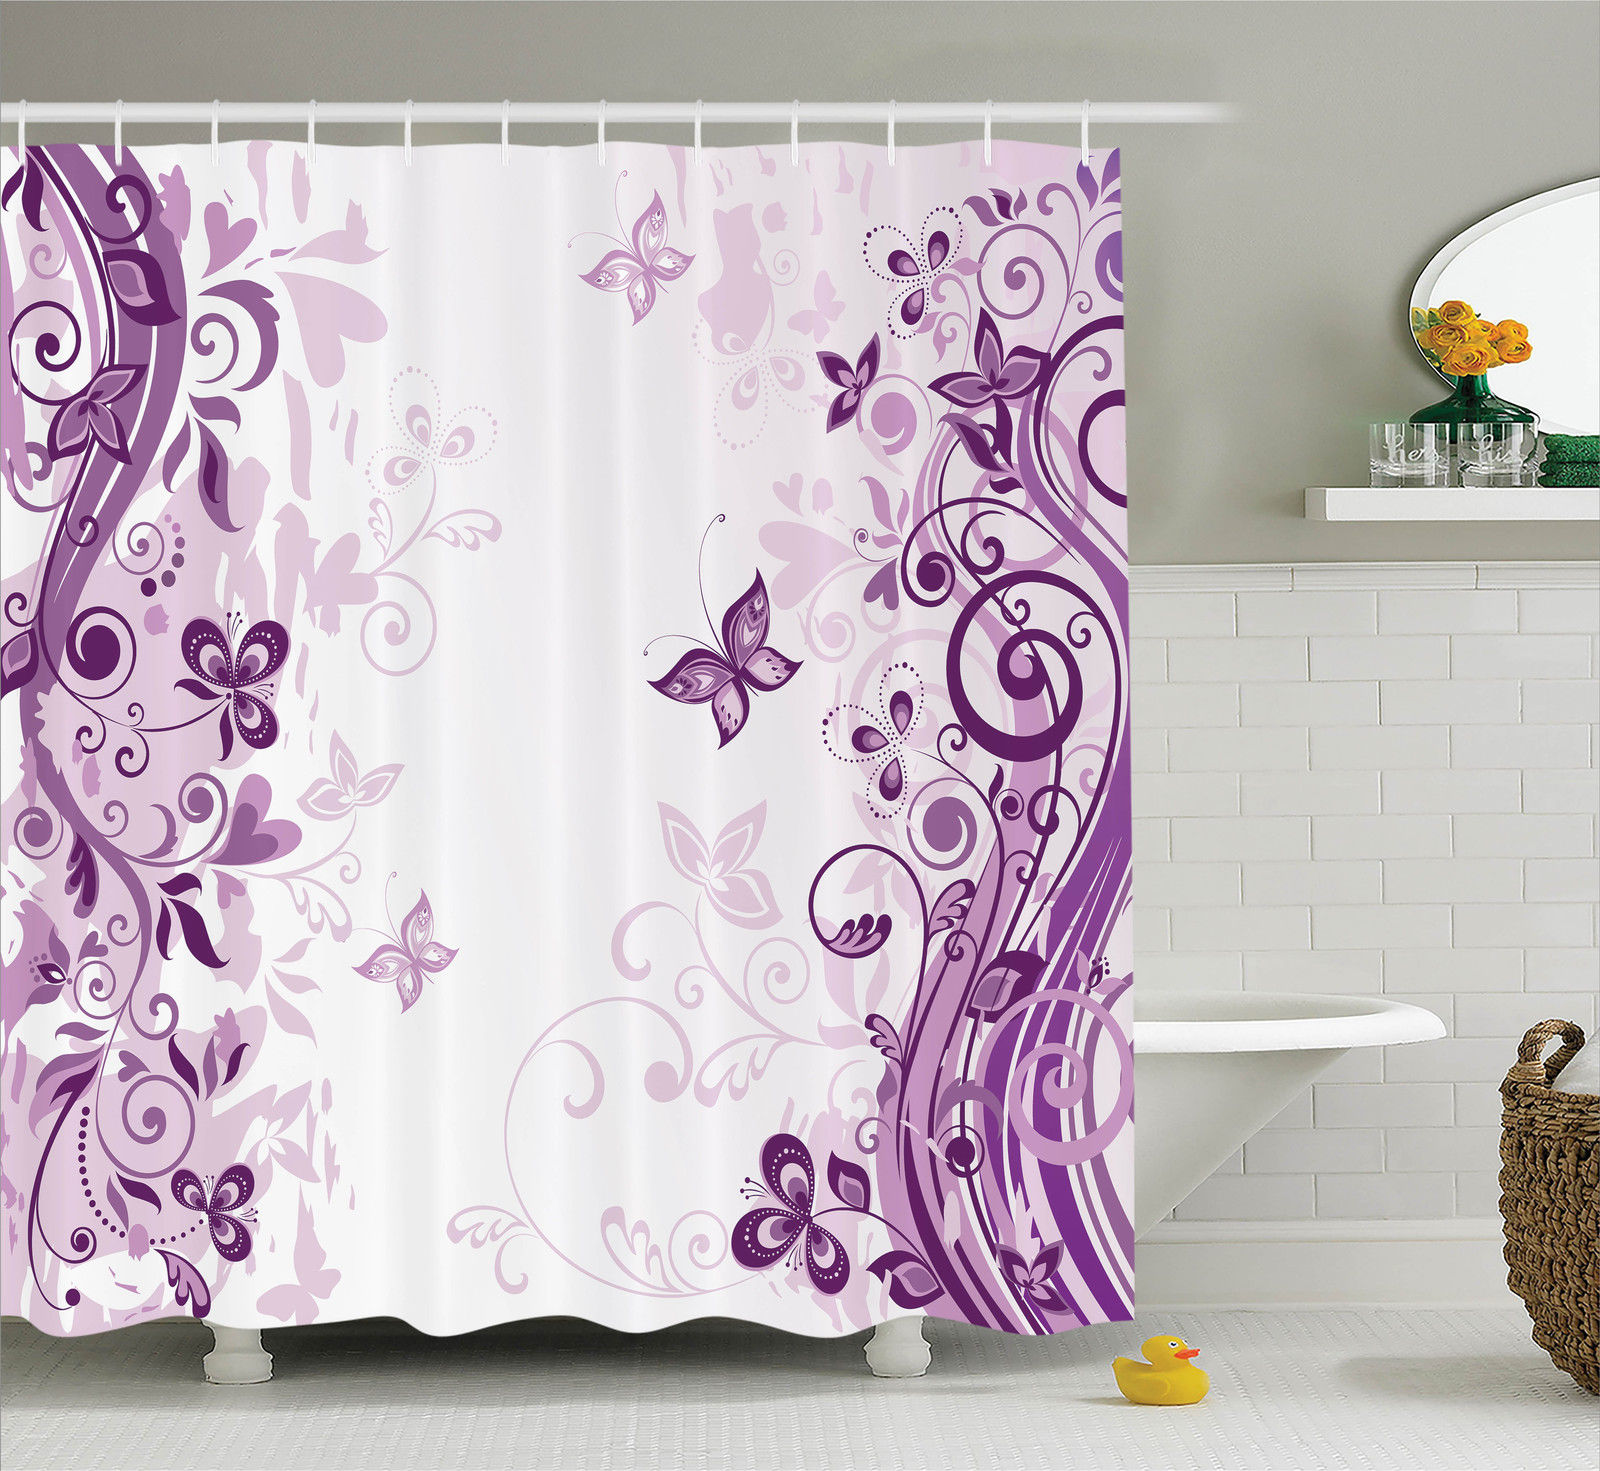 Butterflies Decoration Shower Curtain Set, Illustration Of Fairy Butterflies  With Swirling Flowers Silhouette Floral Decor